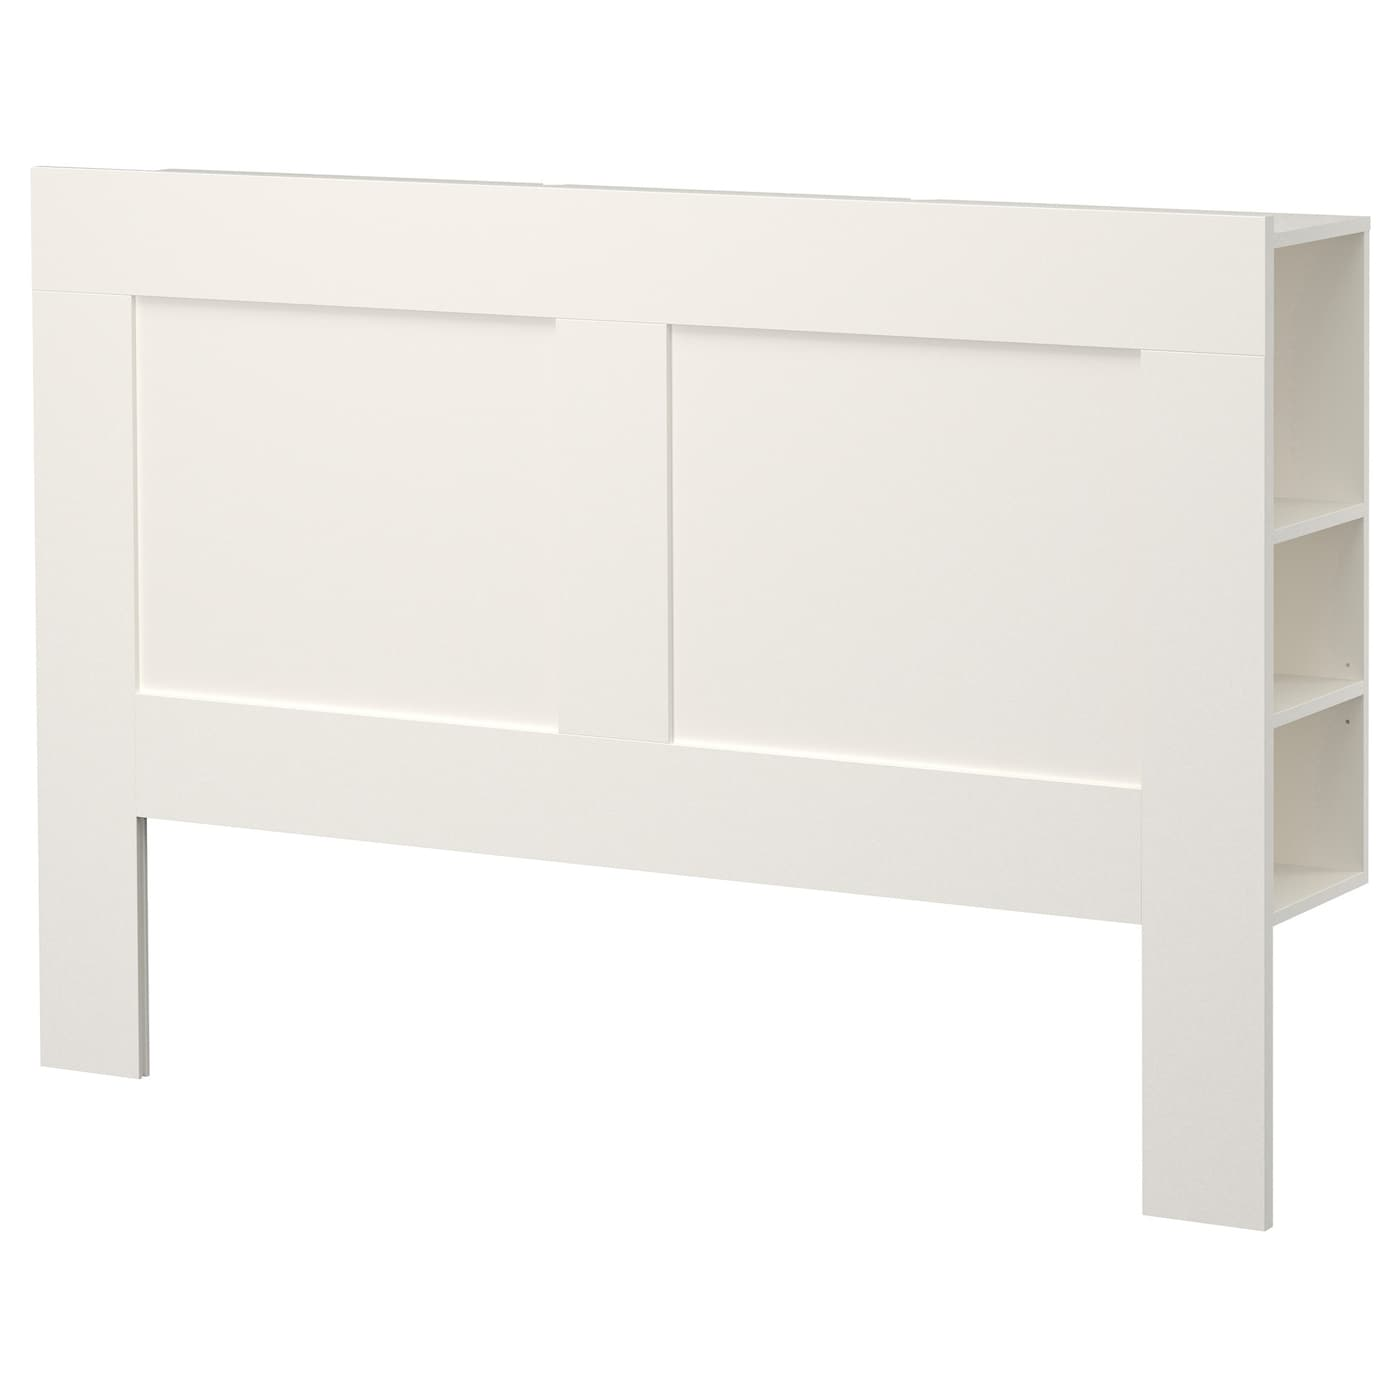 brimnes headboard with storage compartment white standard double ikea. Black Bedroom Furniture Sets. Home Design Ideas